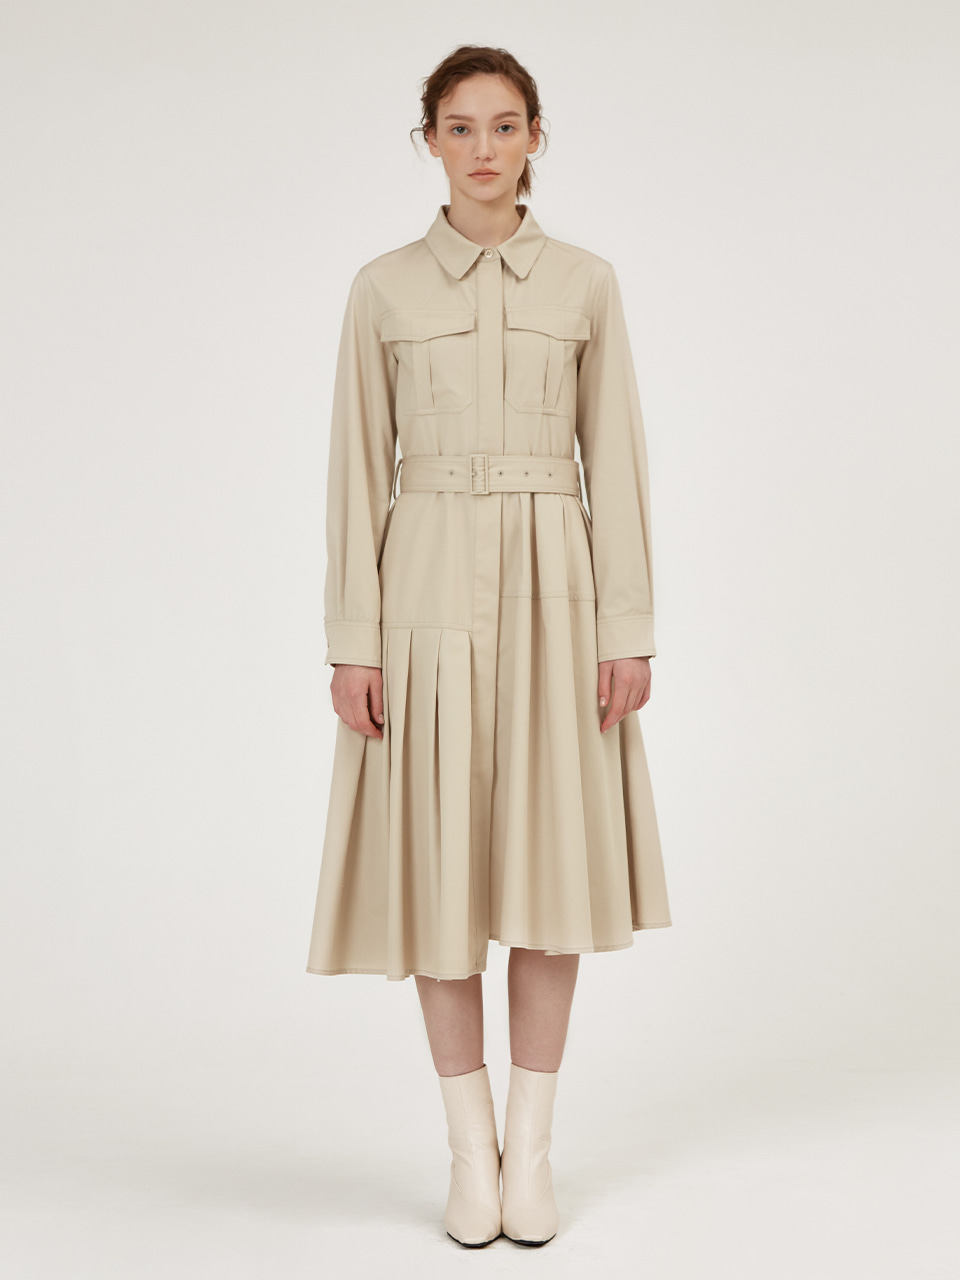 UNBALANCED PLEATS DETAIL TRECH DRESS [Beige]